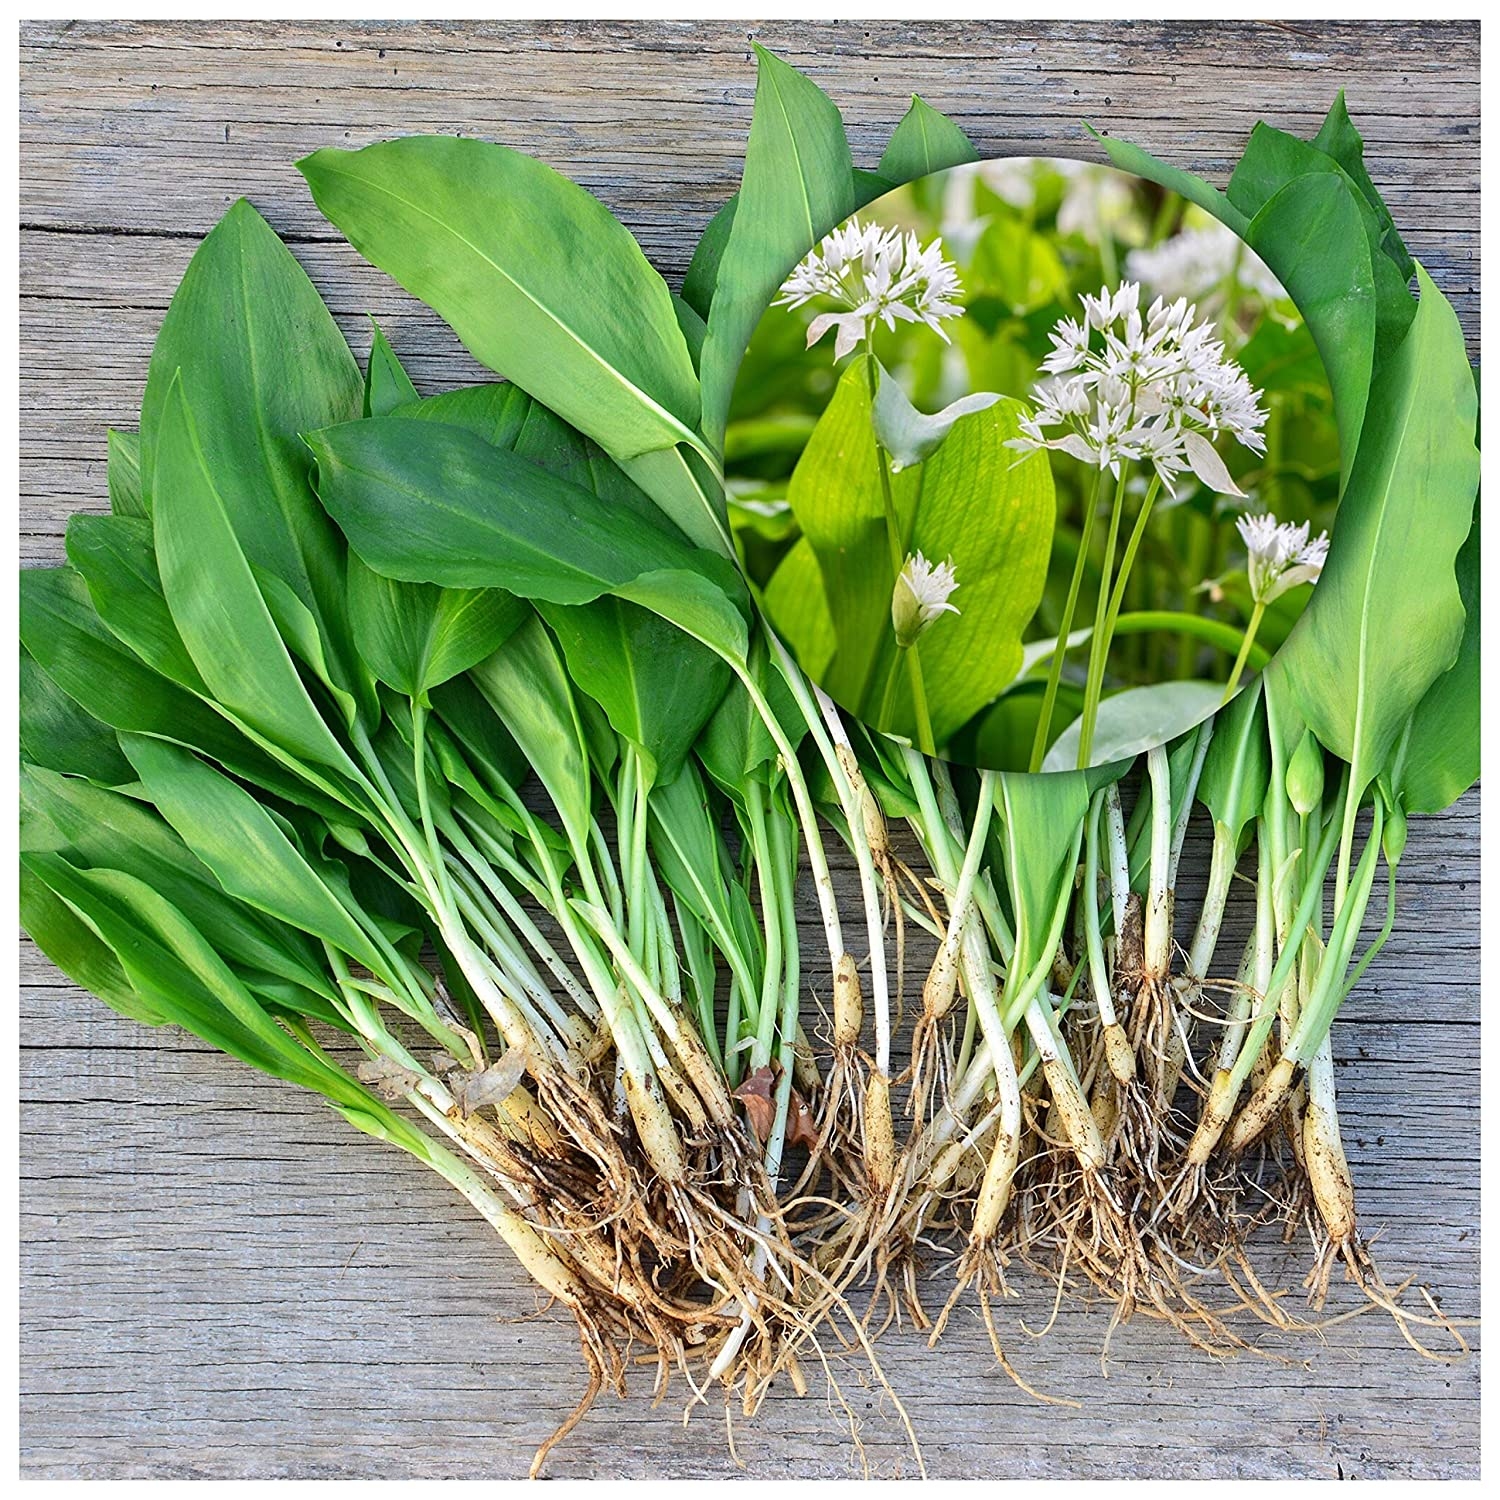 25 Wild Garlic Bulbs (Allium Ursinum) Top Quality Freshly-Lifted Large Bulbs, Spring Flowering Bulbs Native Wild Garlic Ready to Plant (Free UK P&P) Plant with Snowdrops & Bluebells Woodland bulbs